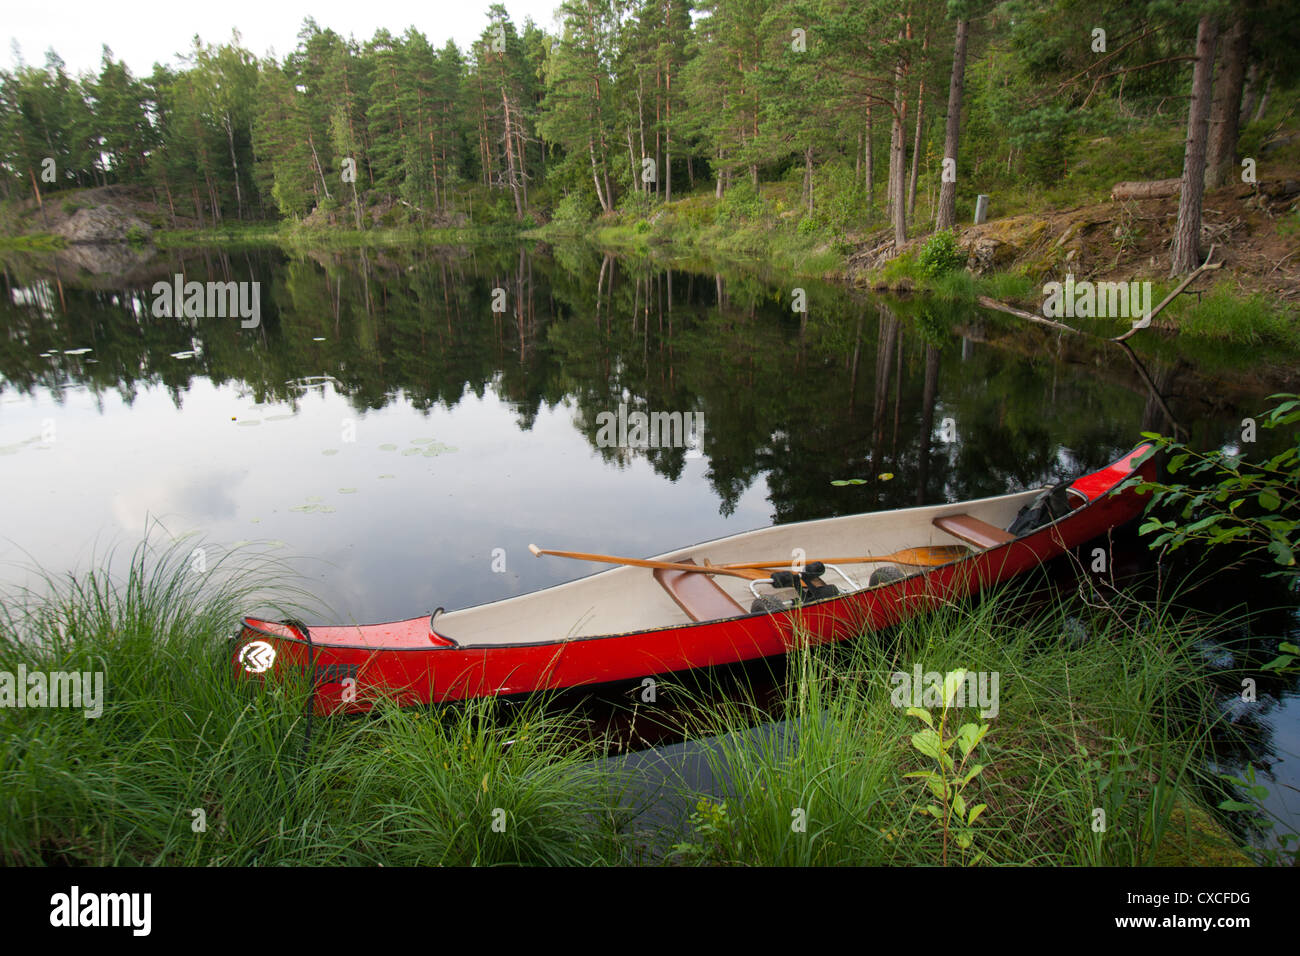 Cano on a lake in Sweden - Stock Image